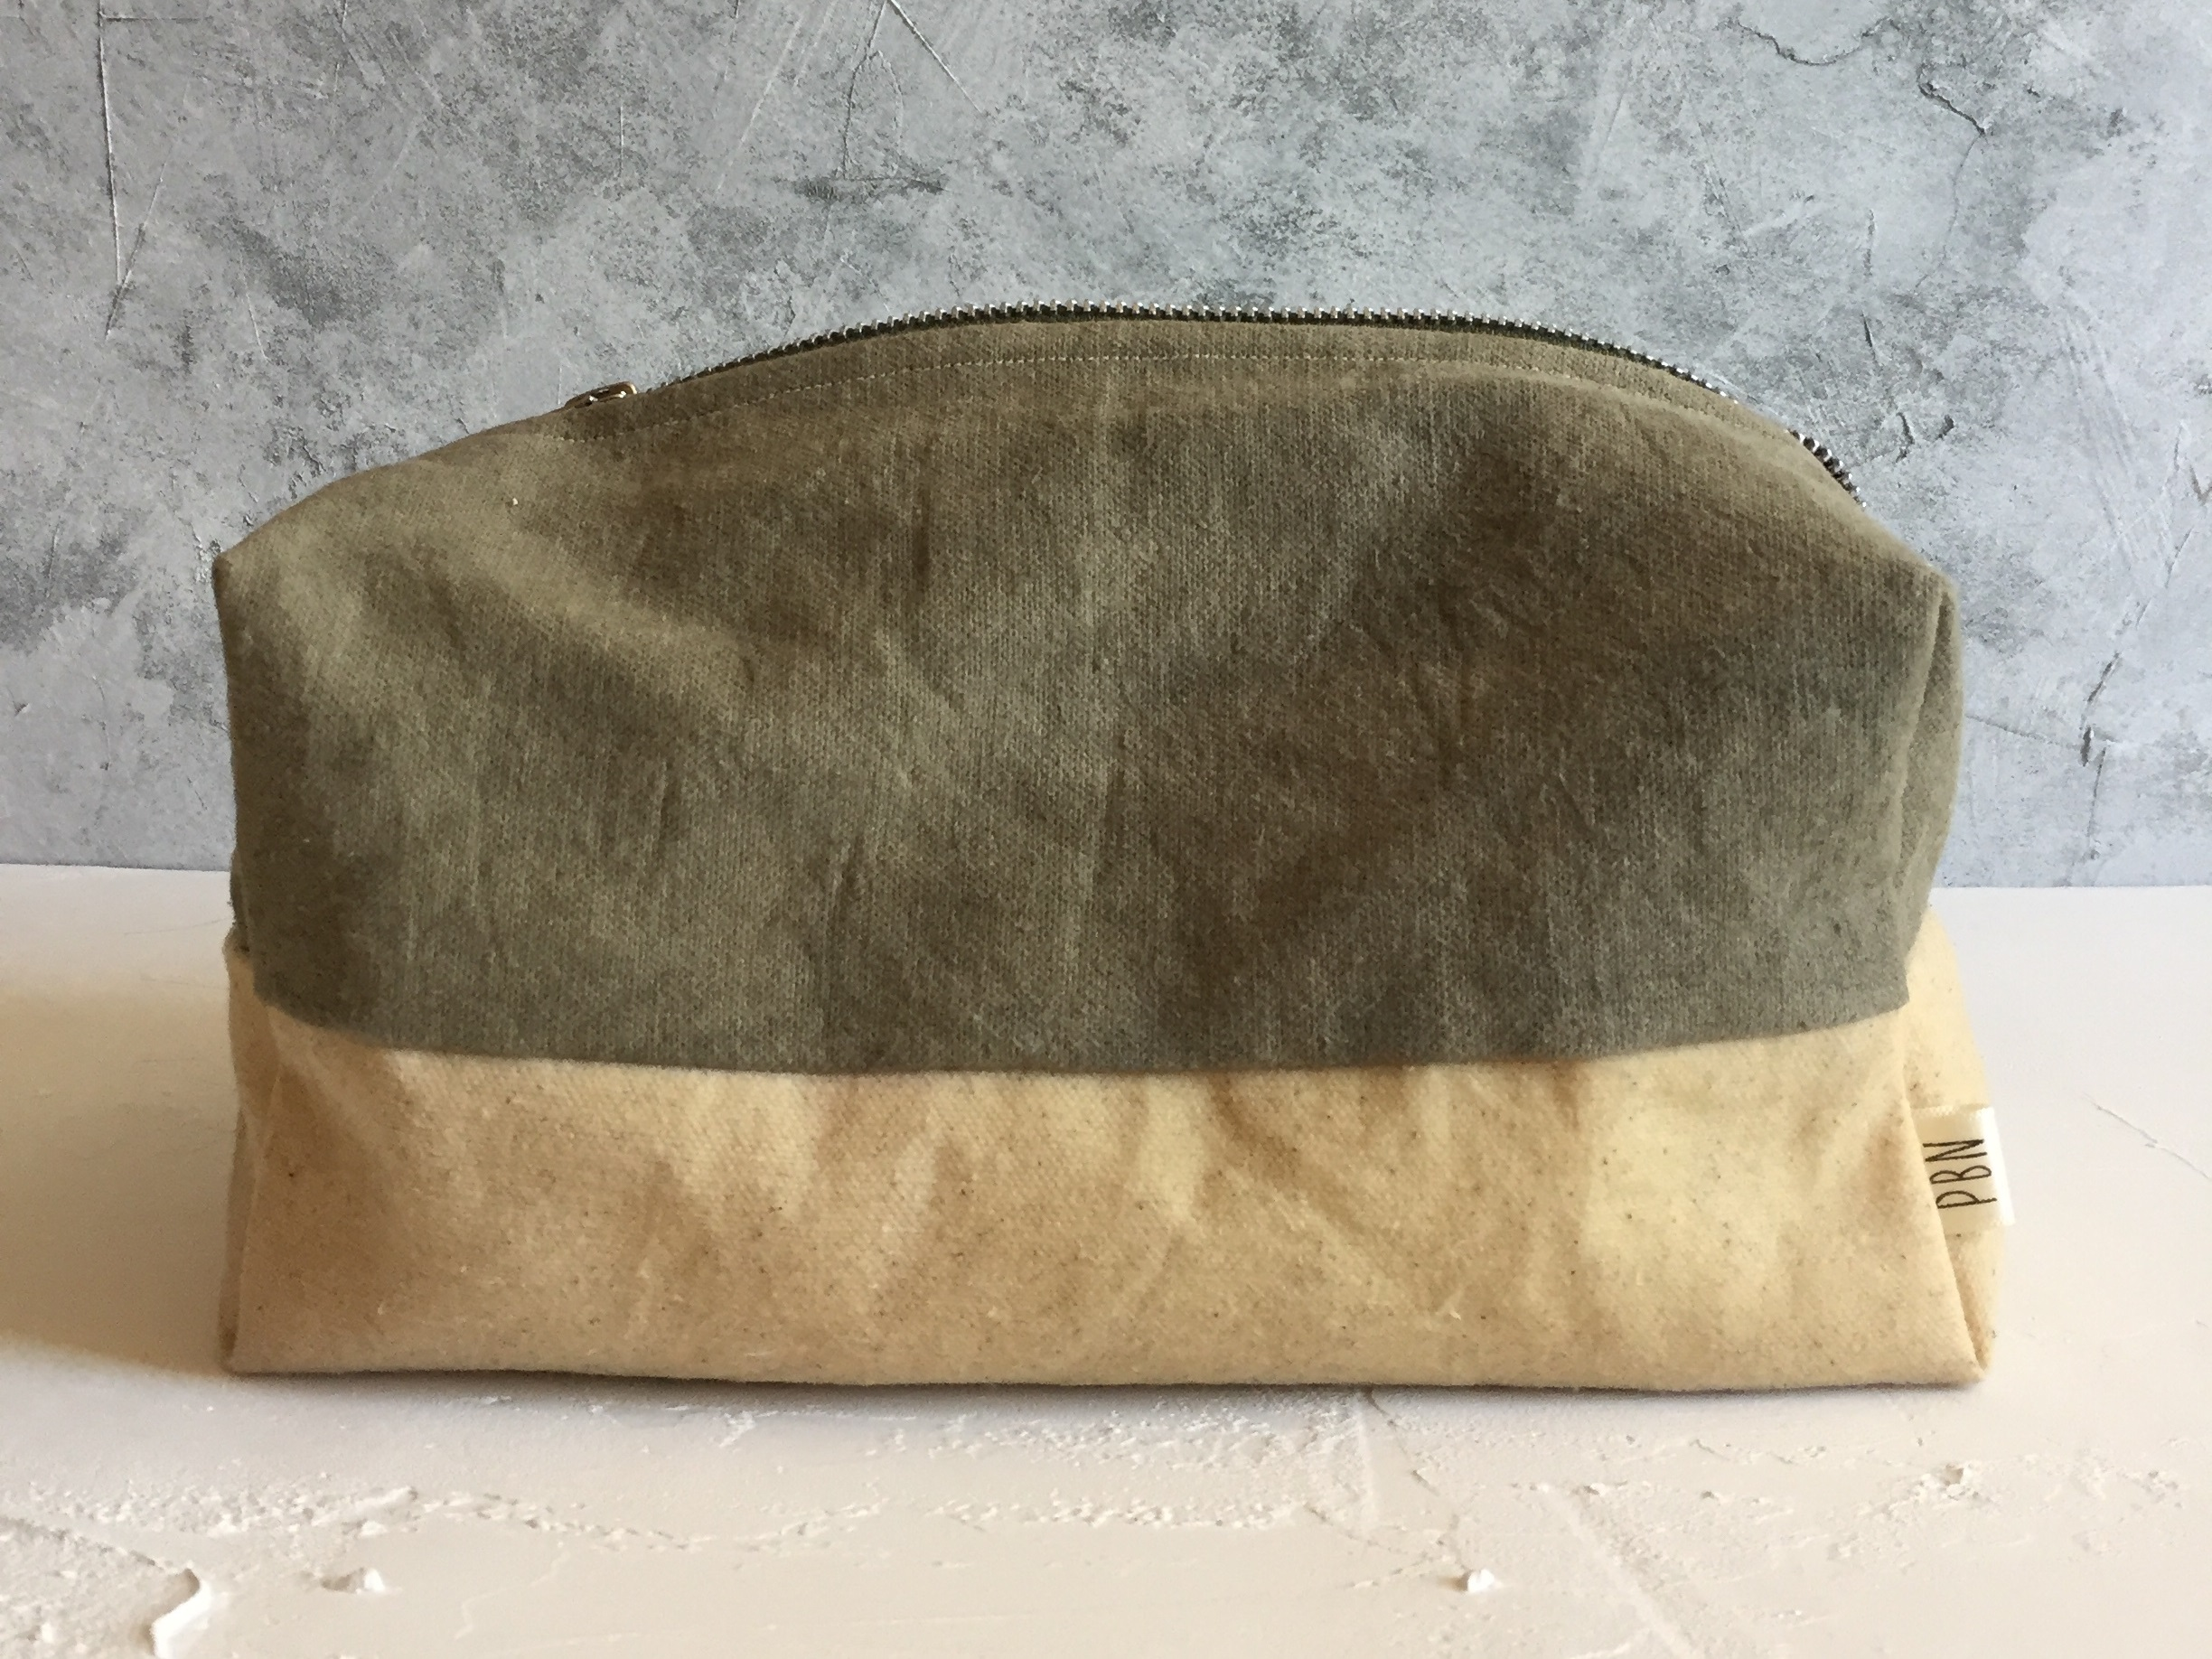 Latest Product Range: - All natural Hand-dyed Waxed Canvas Wash Bags